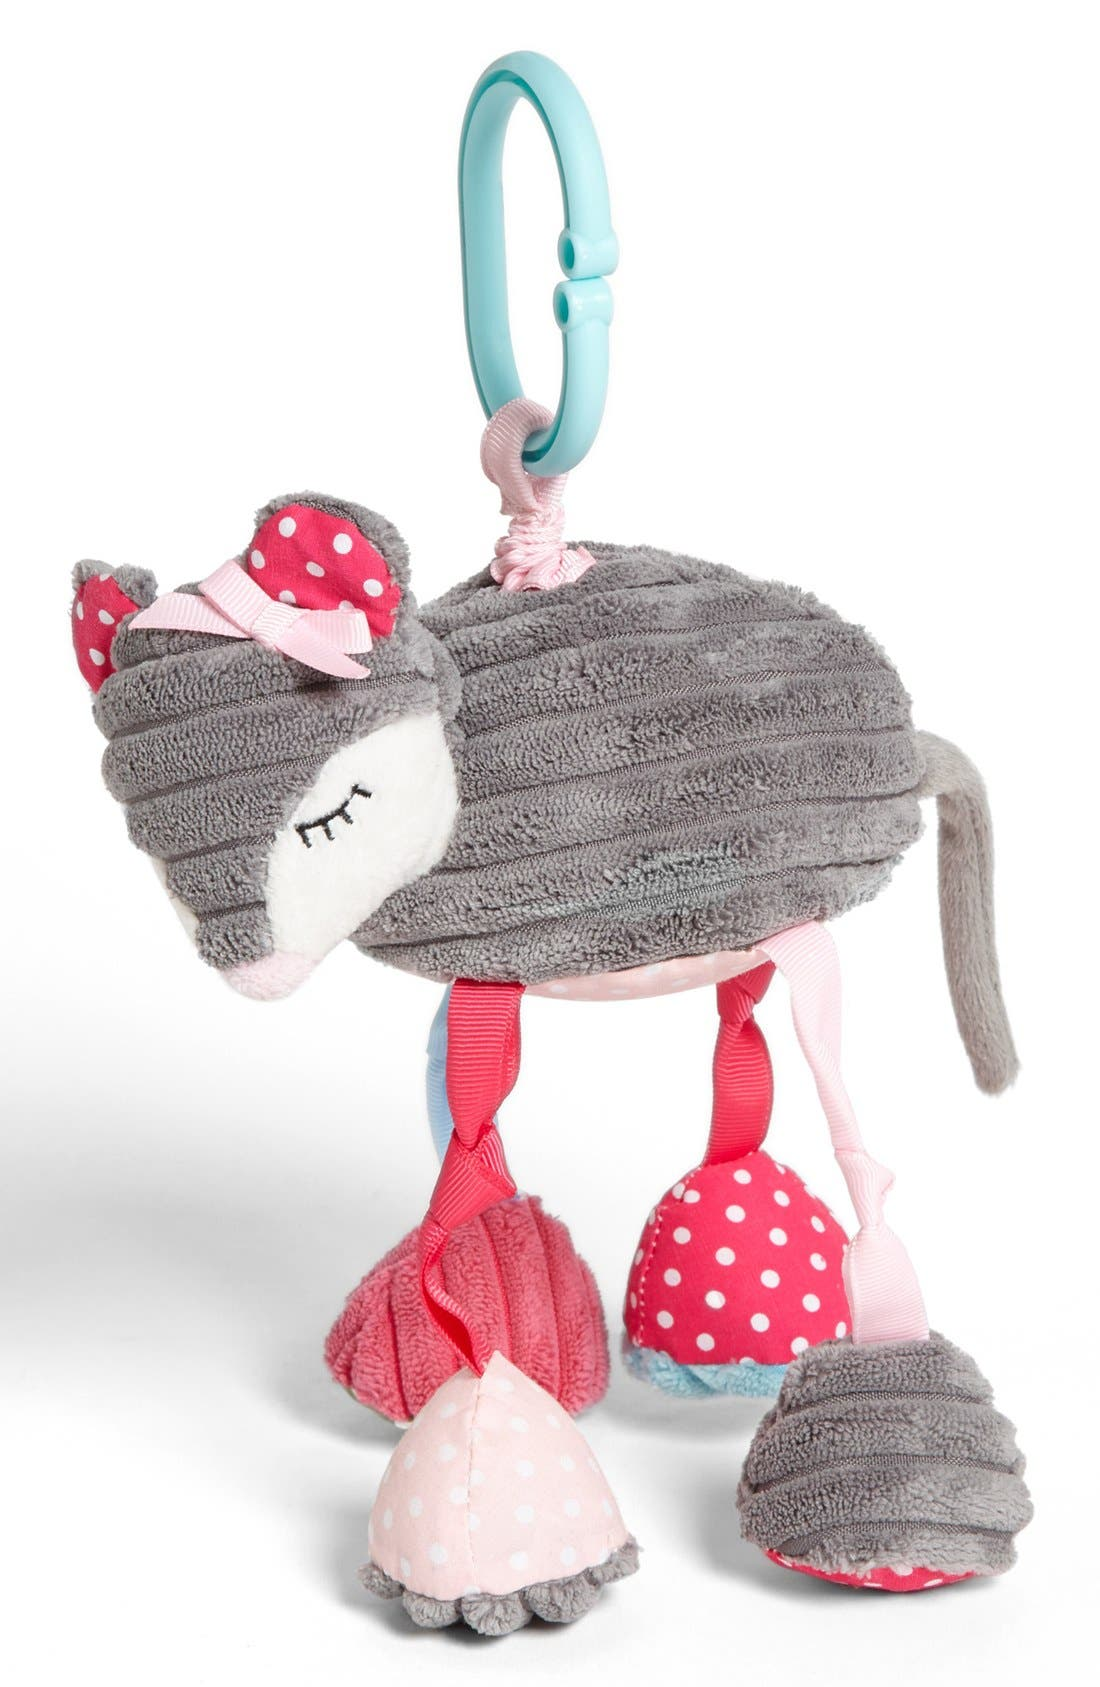 Alternate Image 1 Selected - Mud Pie 'Mouse' Stroller Toy